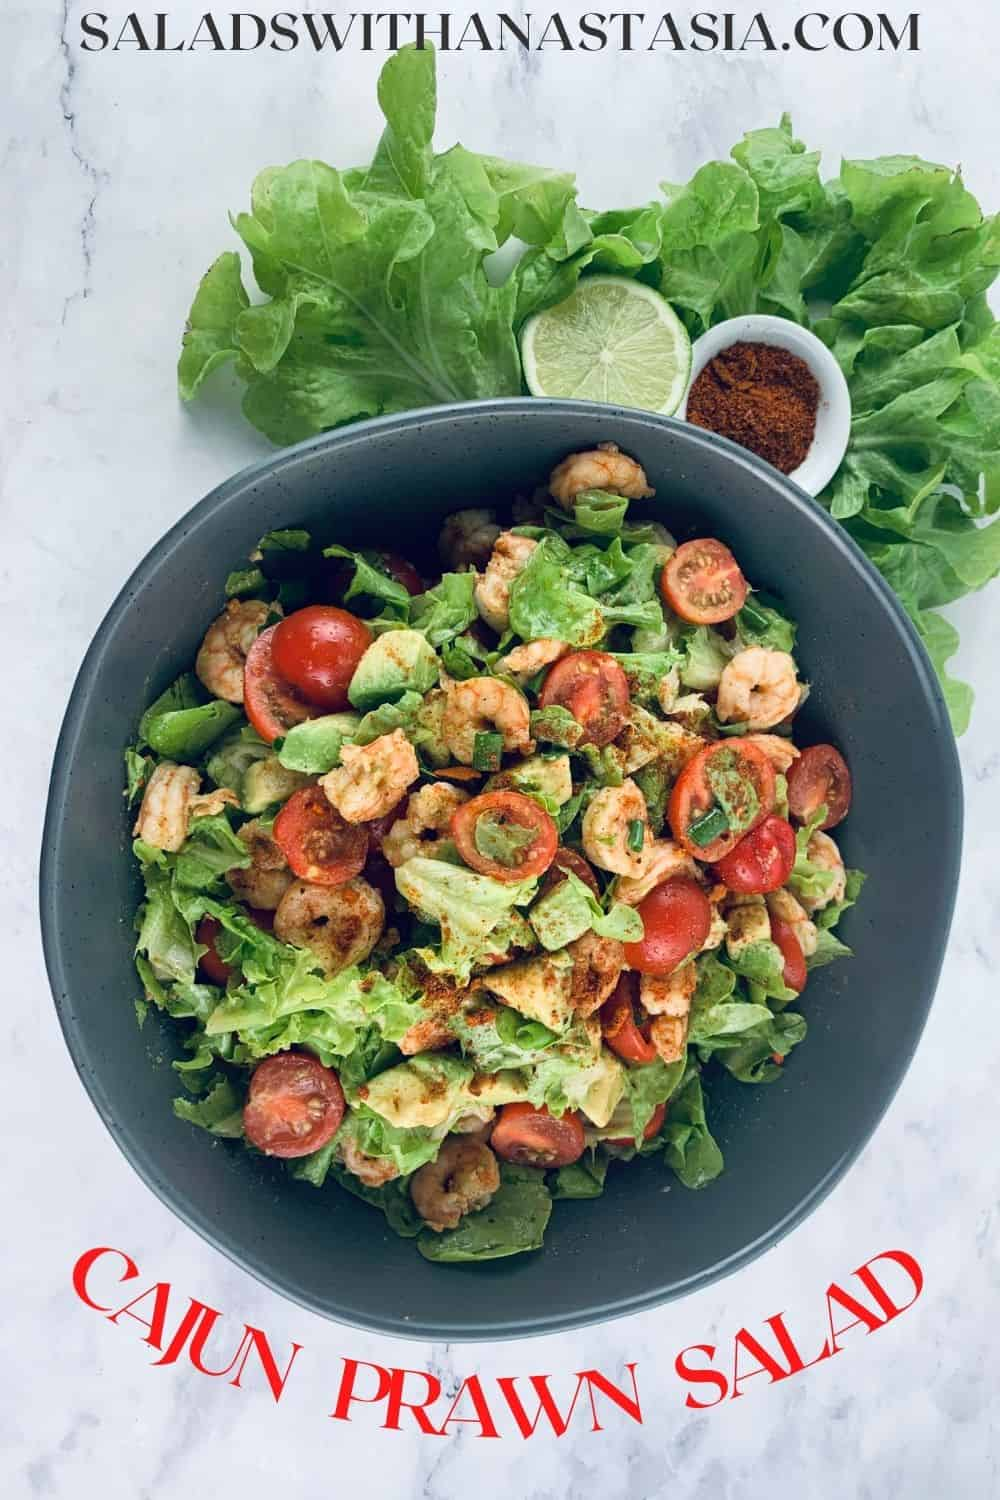 CAJUN SHRIMP SALAD IN A DARK GREY BOWL WITH LETTUCE LIME & CAJUN SPICE ON THE SIDE + TEXT OVERLAY